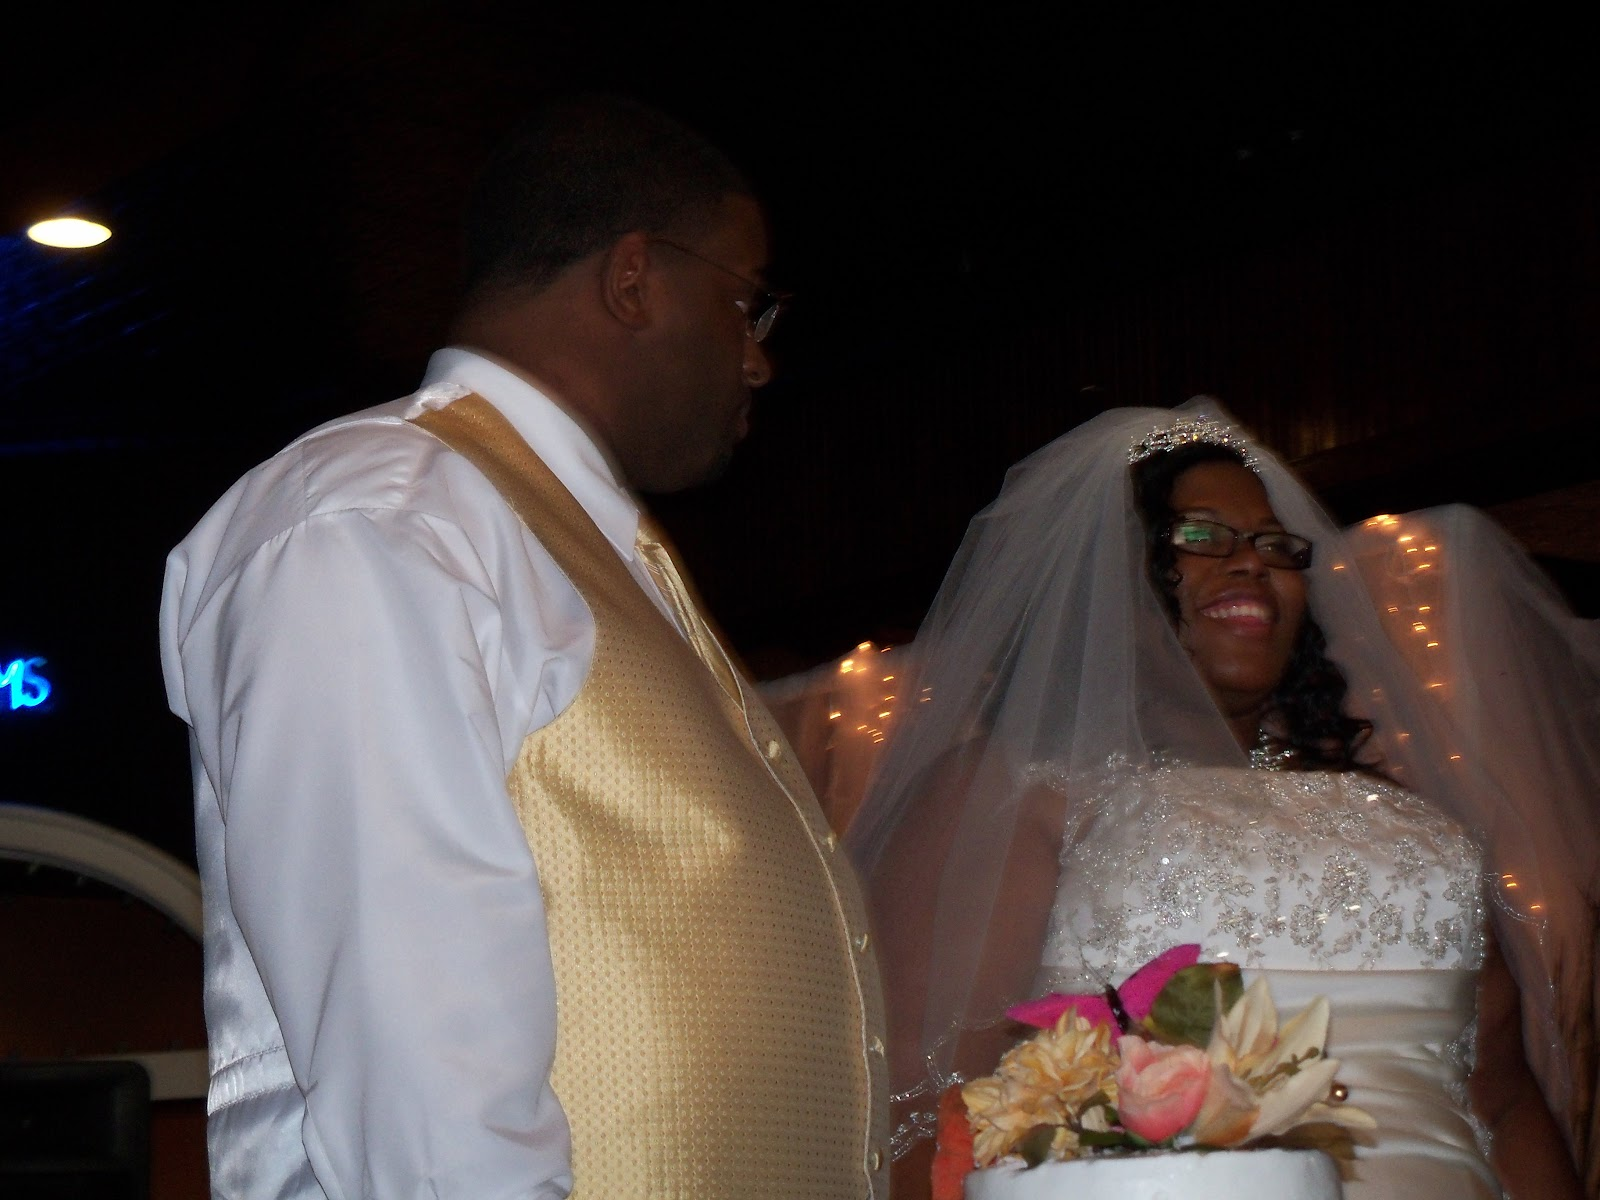 MeChaia Lunn and Clyde Longs wedding - 101_4658.JPG